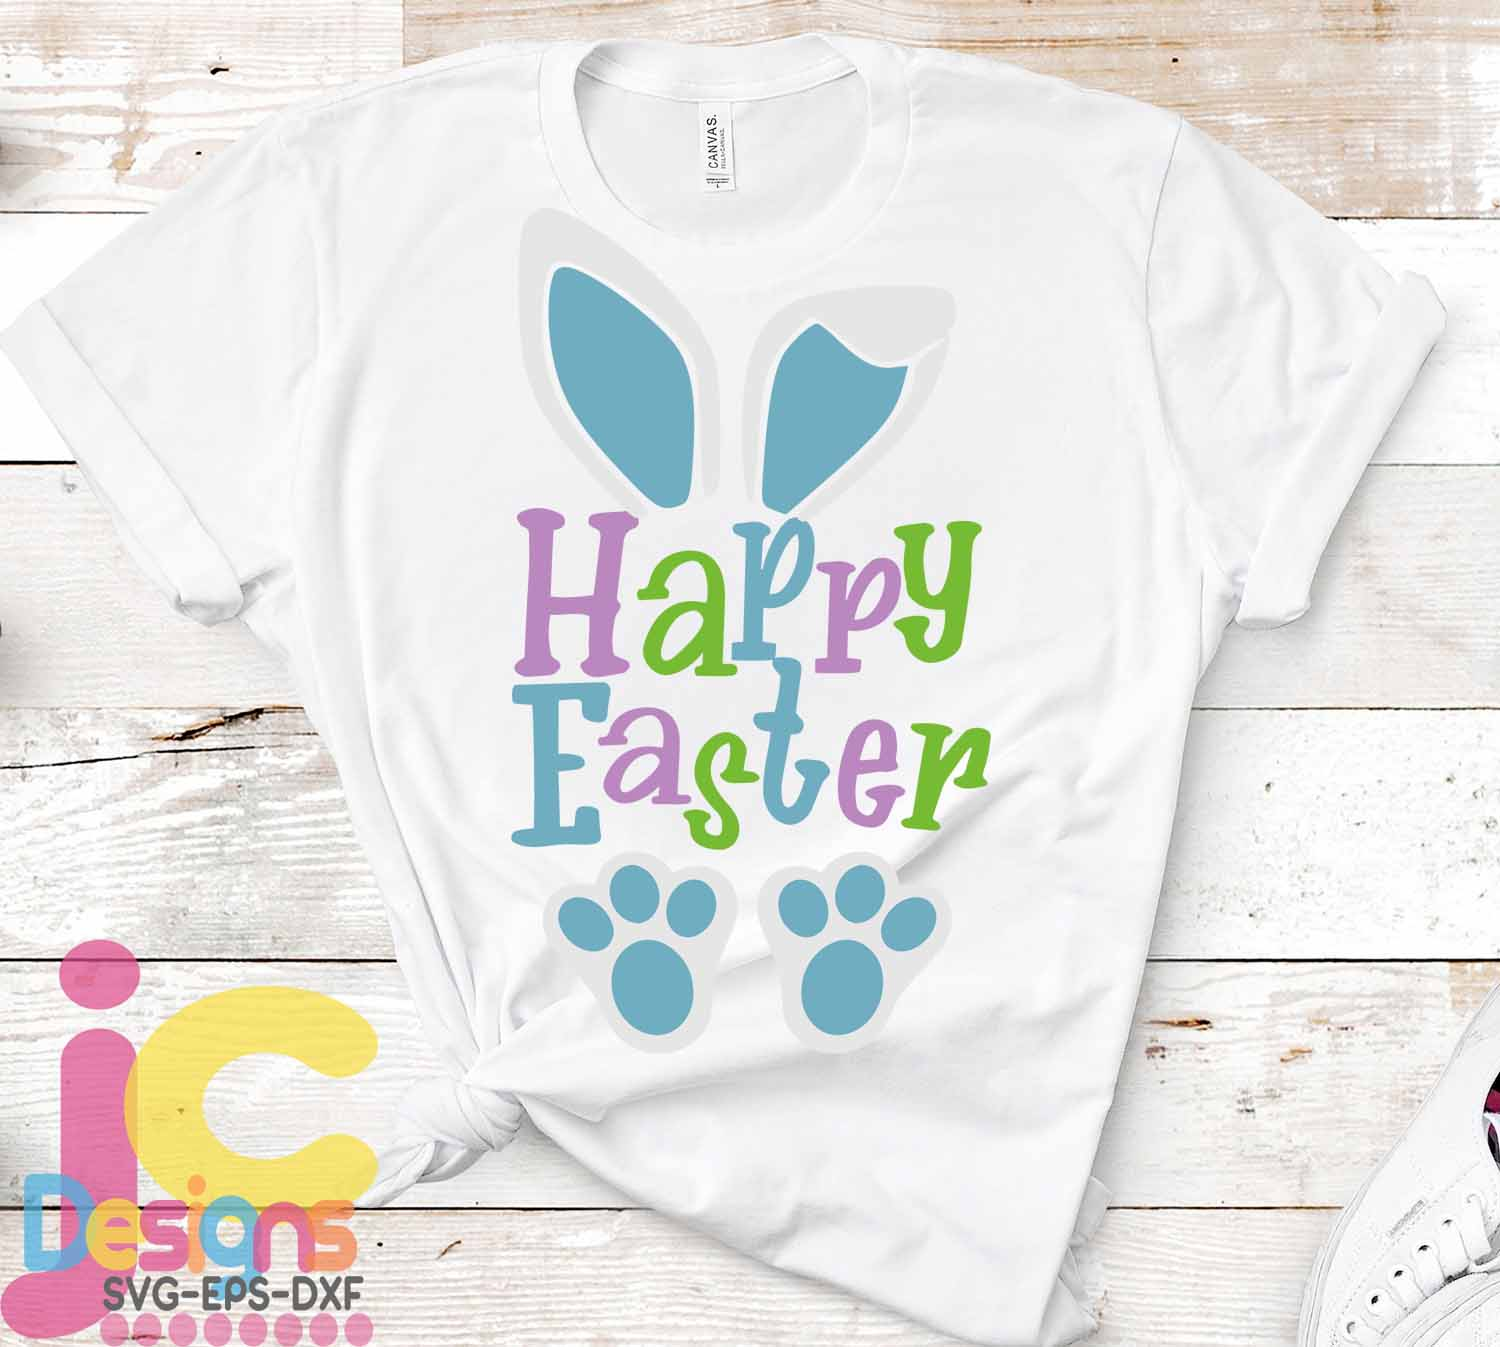 Happy Easter SVG, Easter SVG, Bunny ears Spring svg example image 2